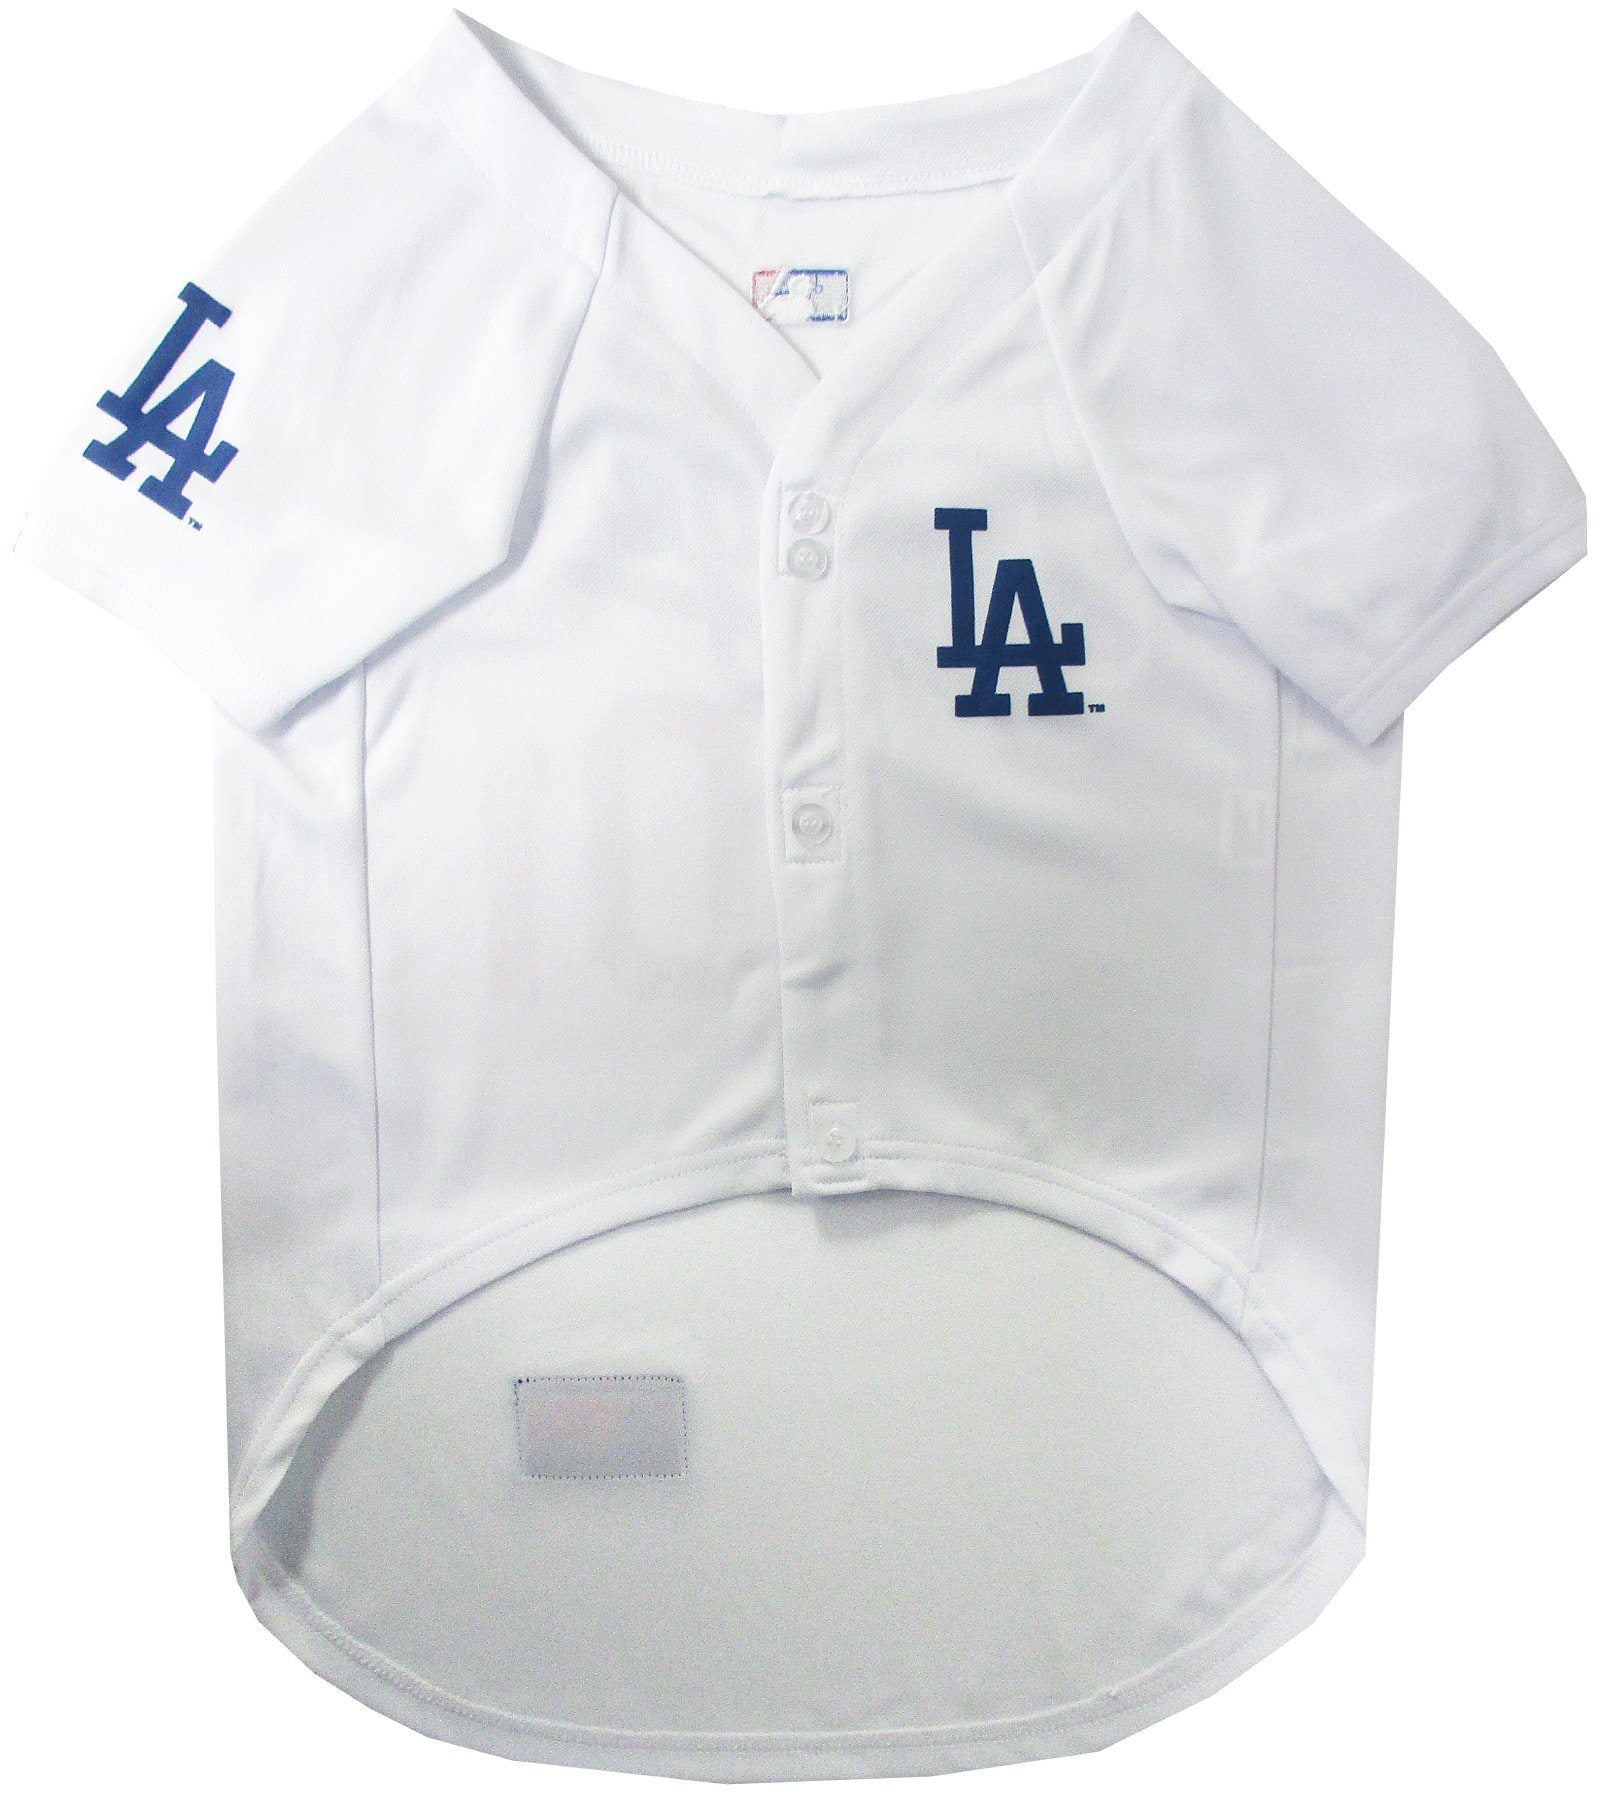 Los Angeles Dodgers Puppy Dog Baseball Jersey - Jersey Champs - Custom Basketball, Baseball, Football & Hockey Jerseys